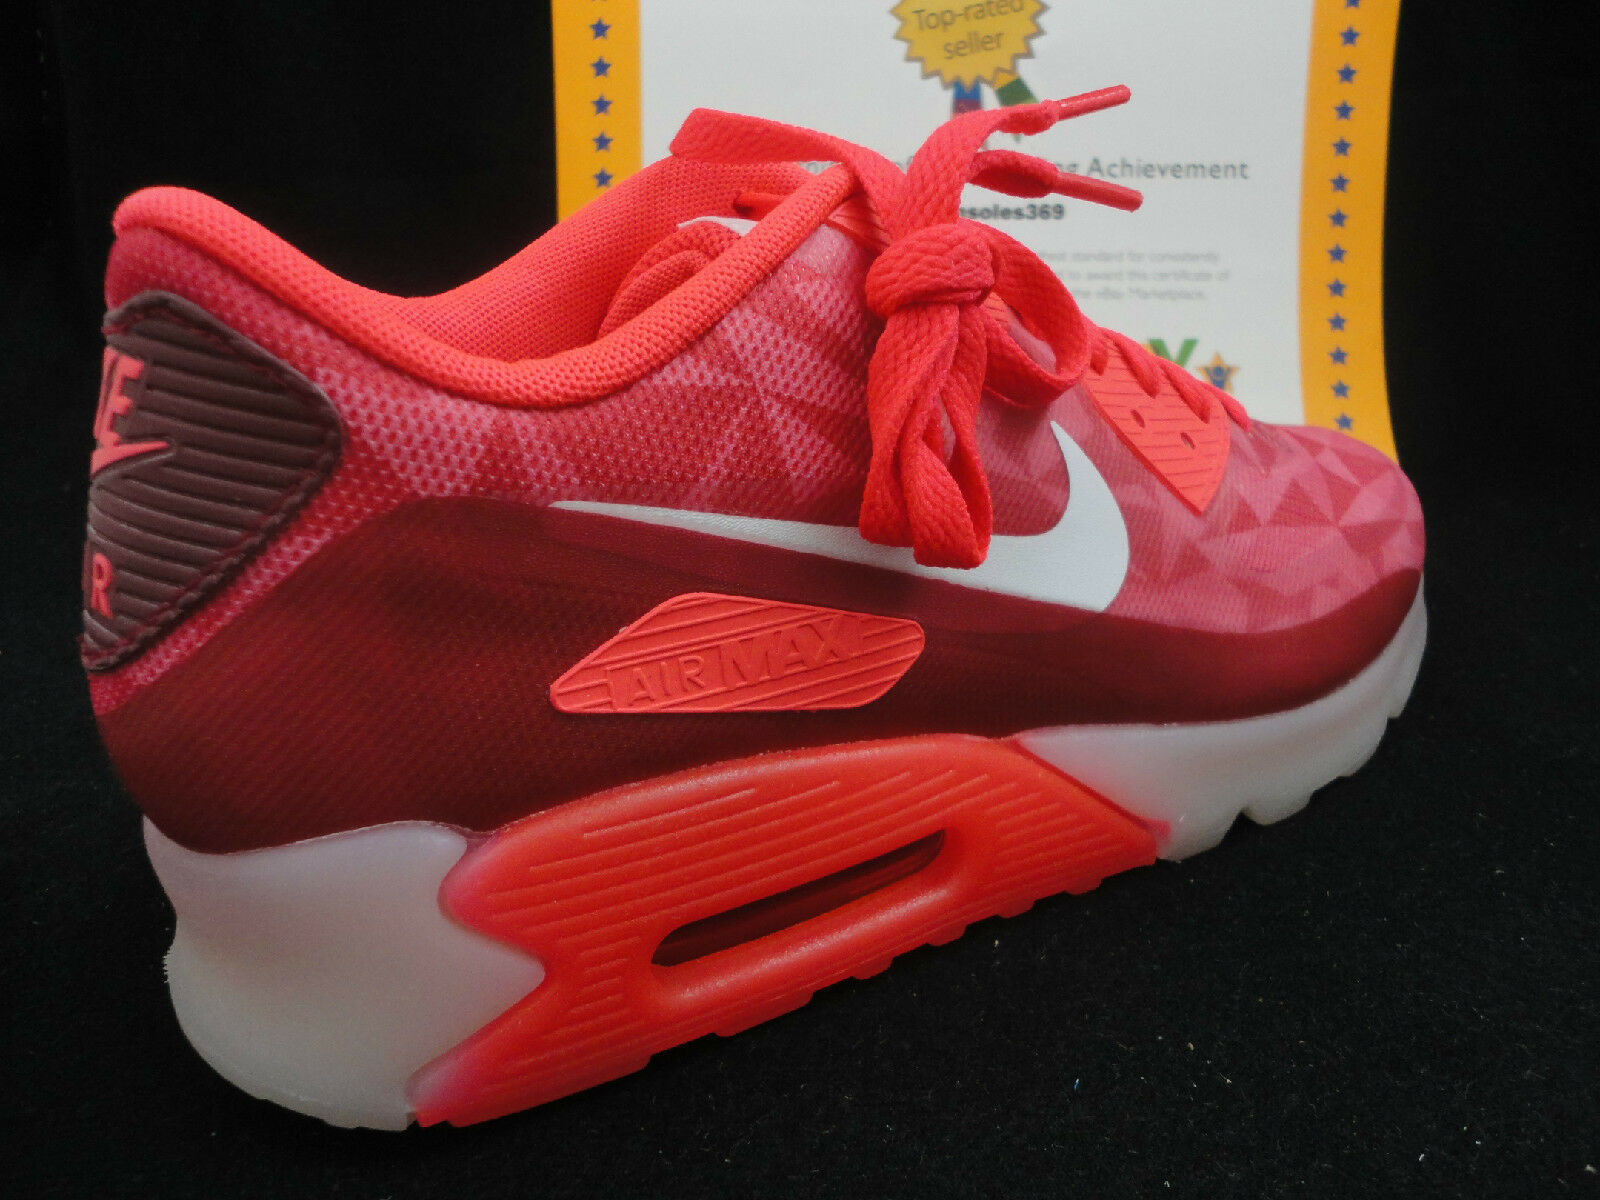 Nike Air Red, Max 90 Ice, Laser Crimson / Legion Red, Air Limited, Size 12 98f00d